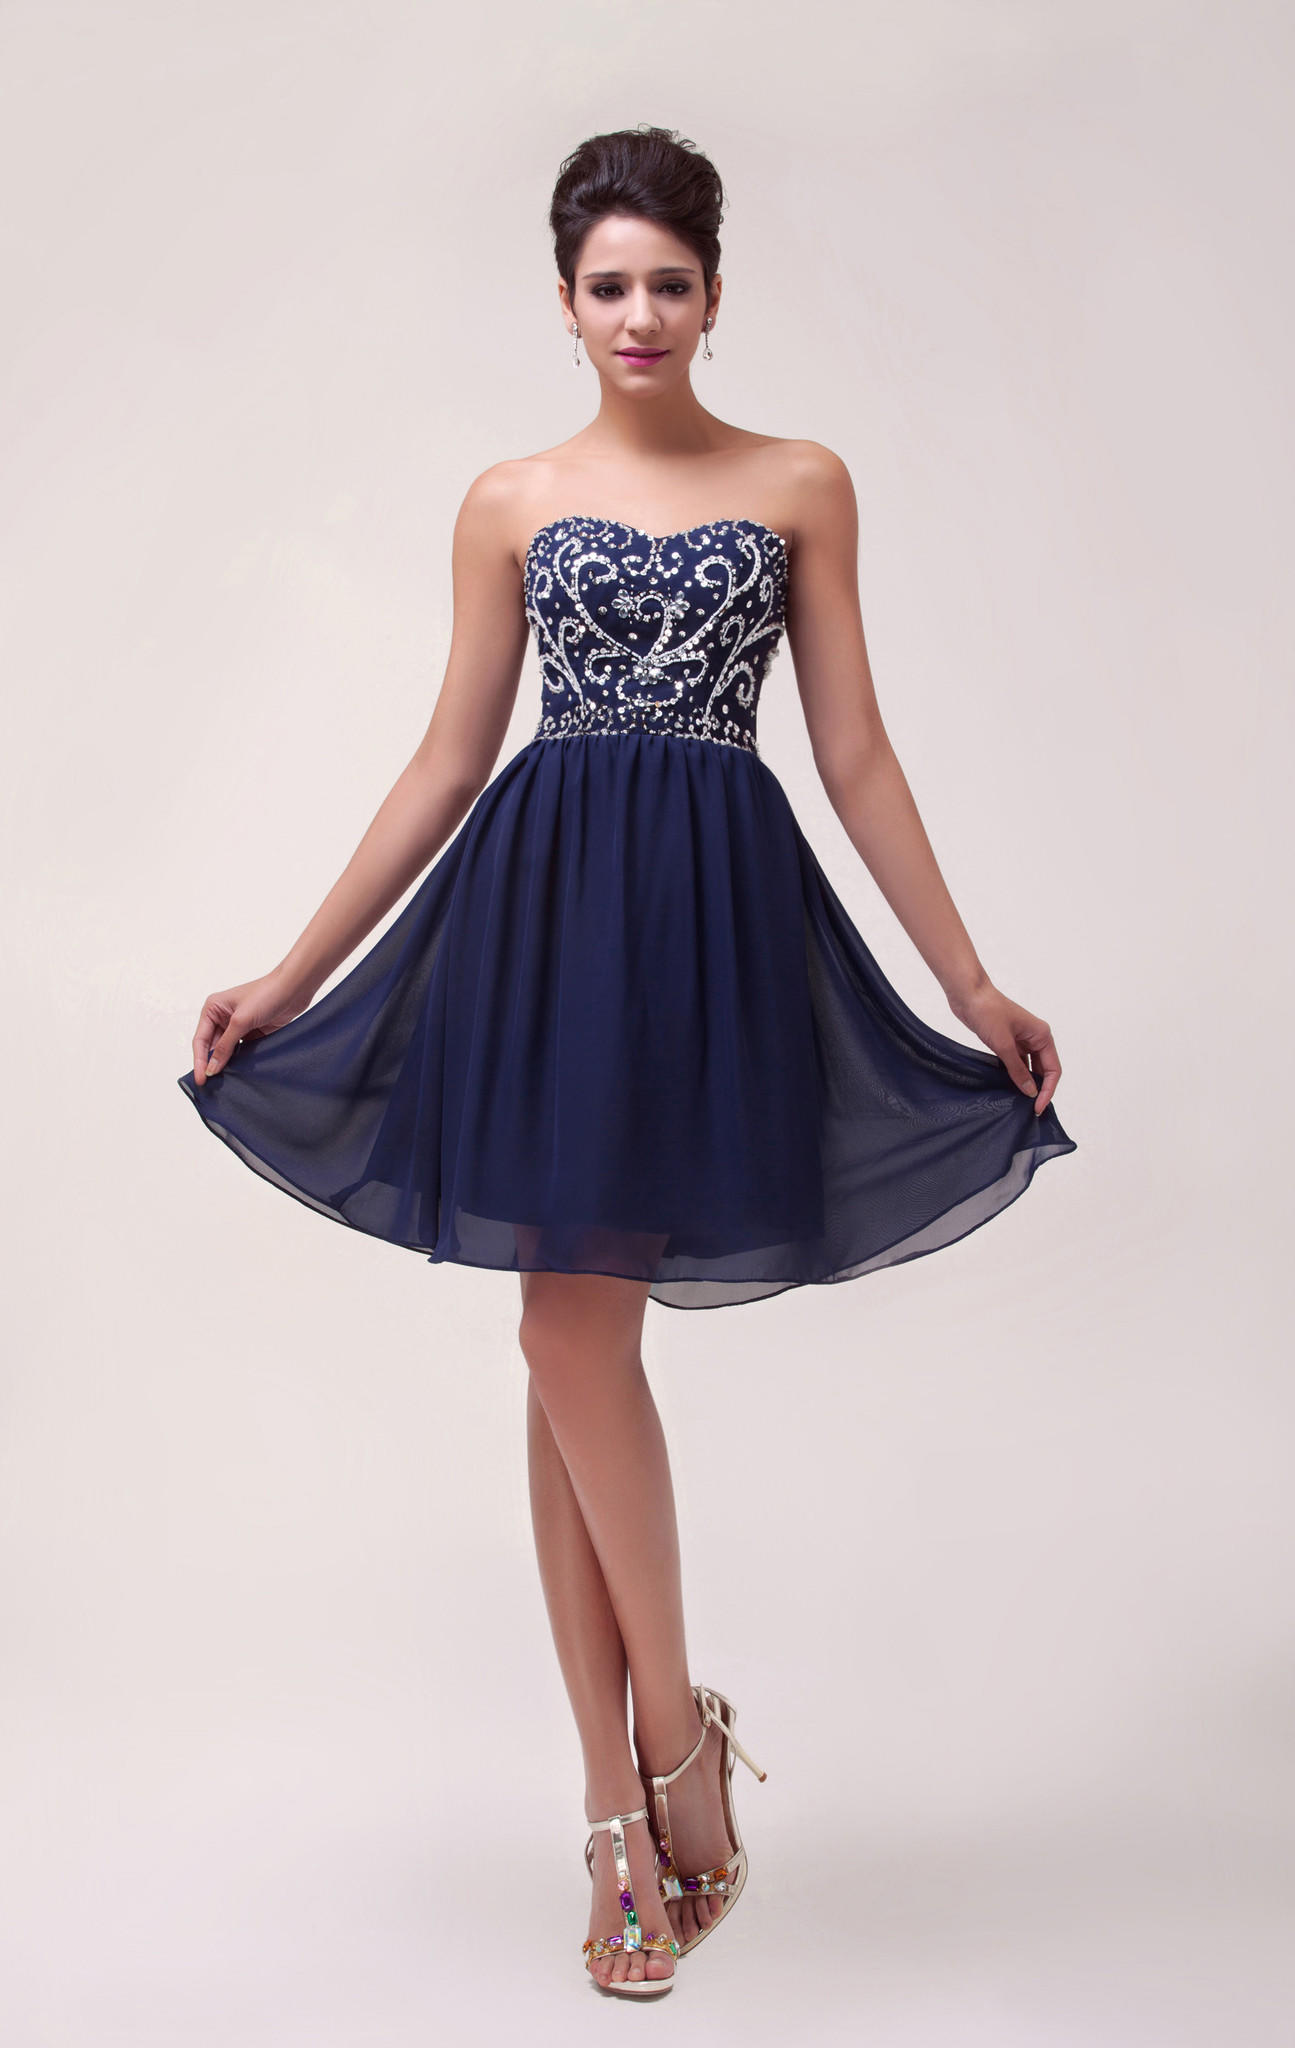 Where To Find Homecoming Dresses